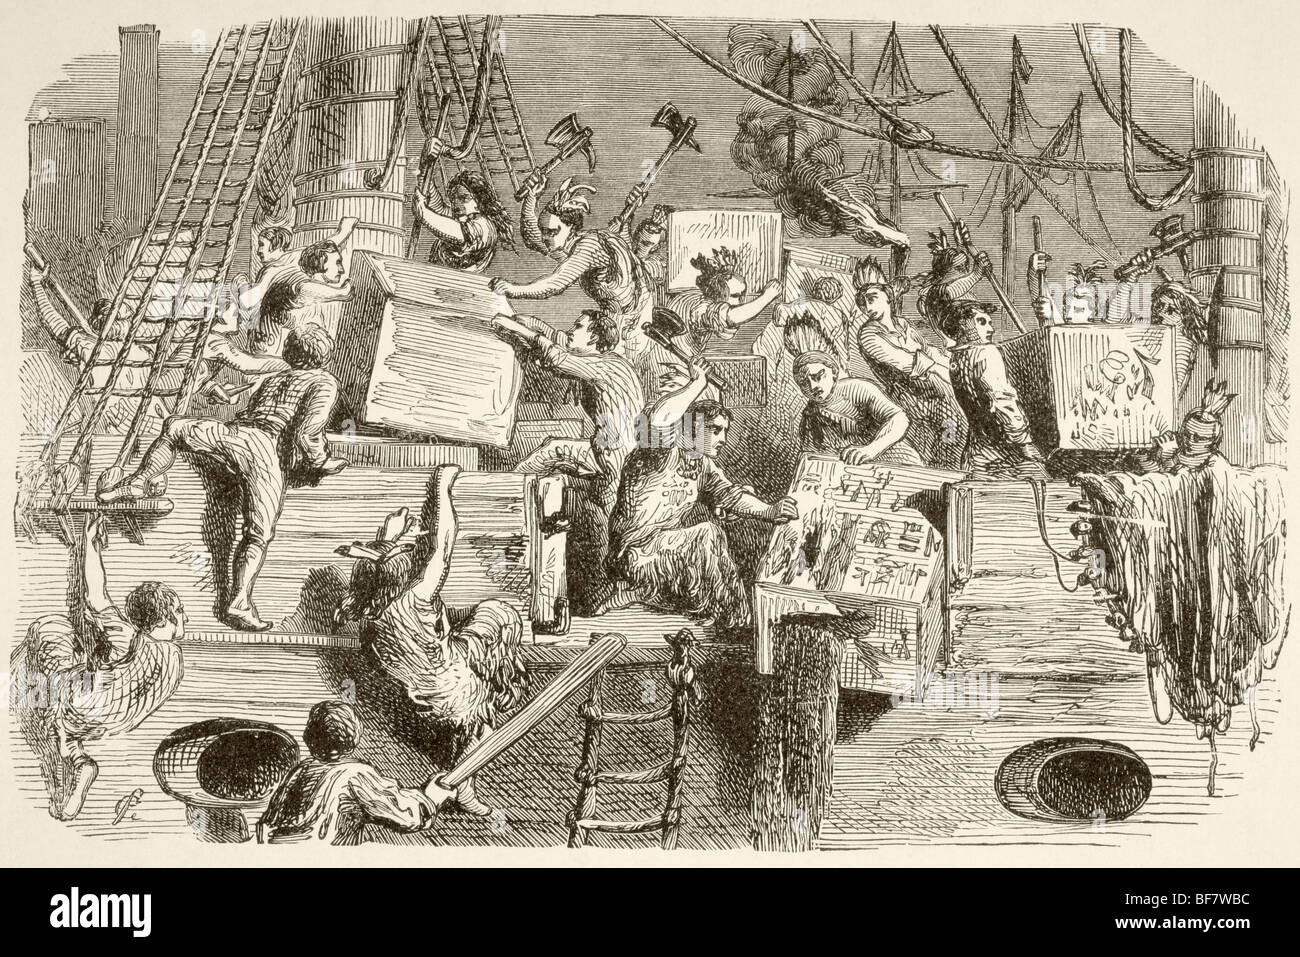 The Boston Tea Party, December 16, 1773. Colonists disguised as Mohawk  Indians destroy chests of tea on ships in Boston harbour.